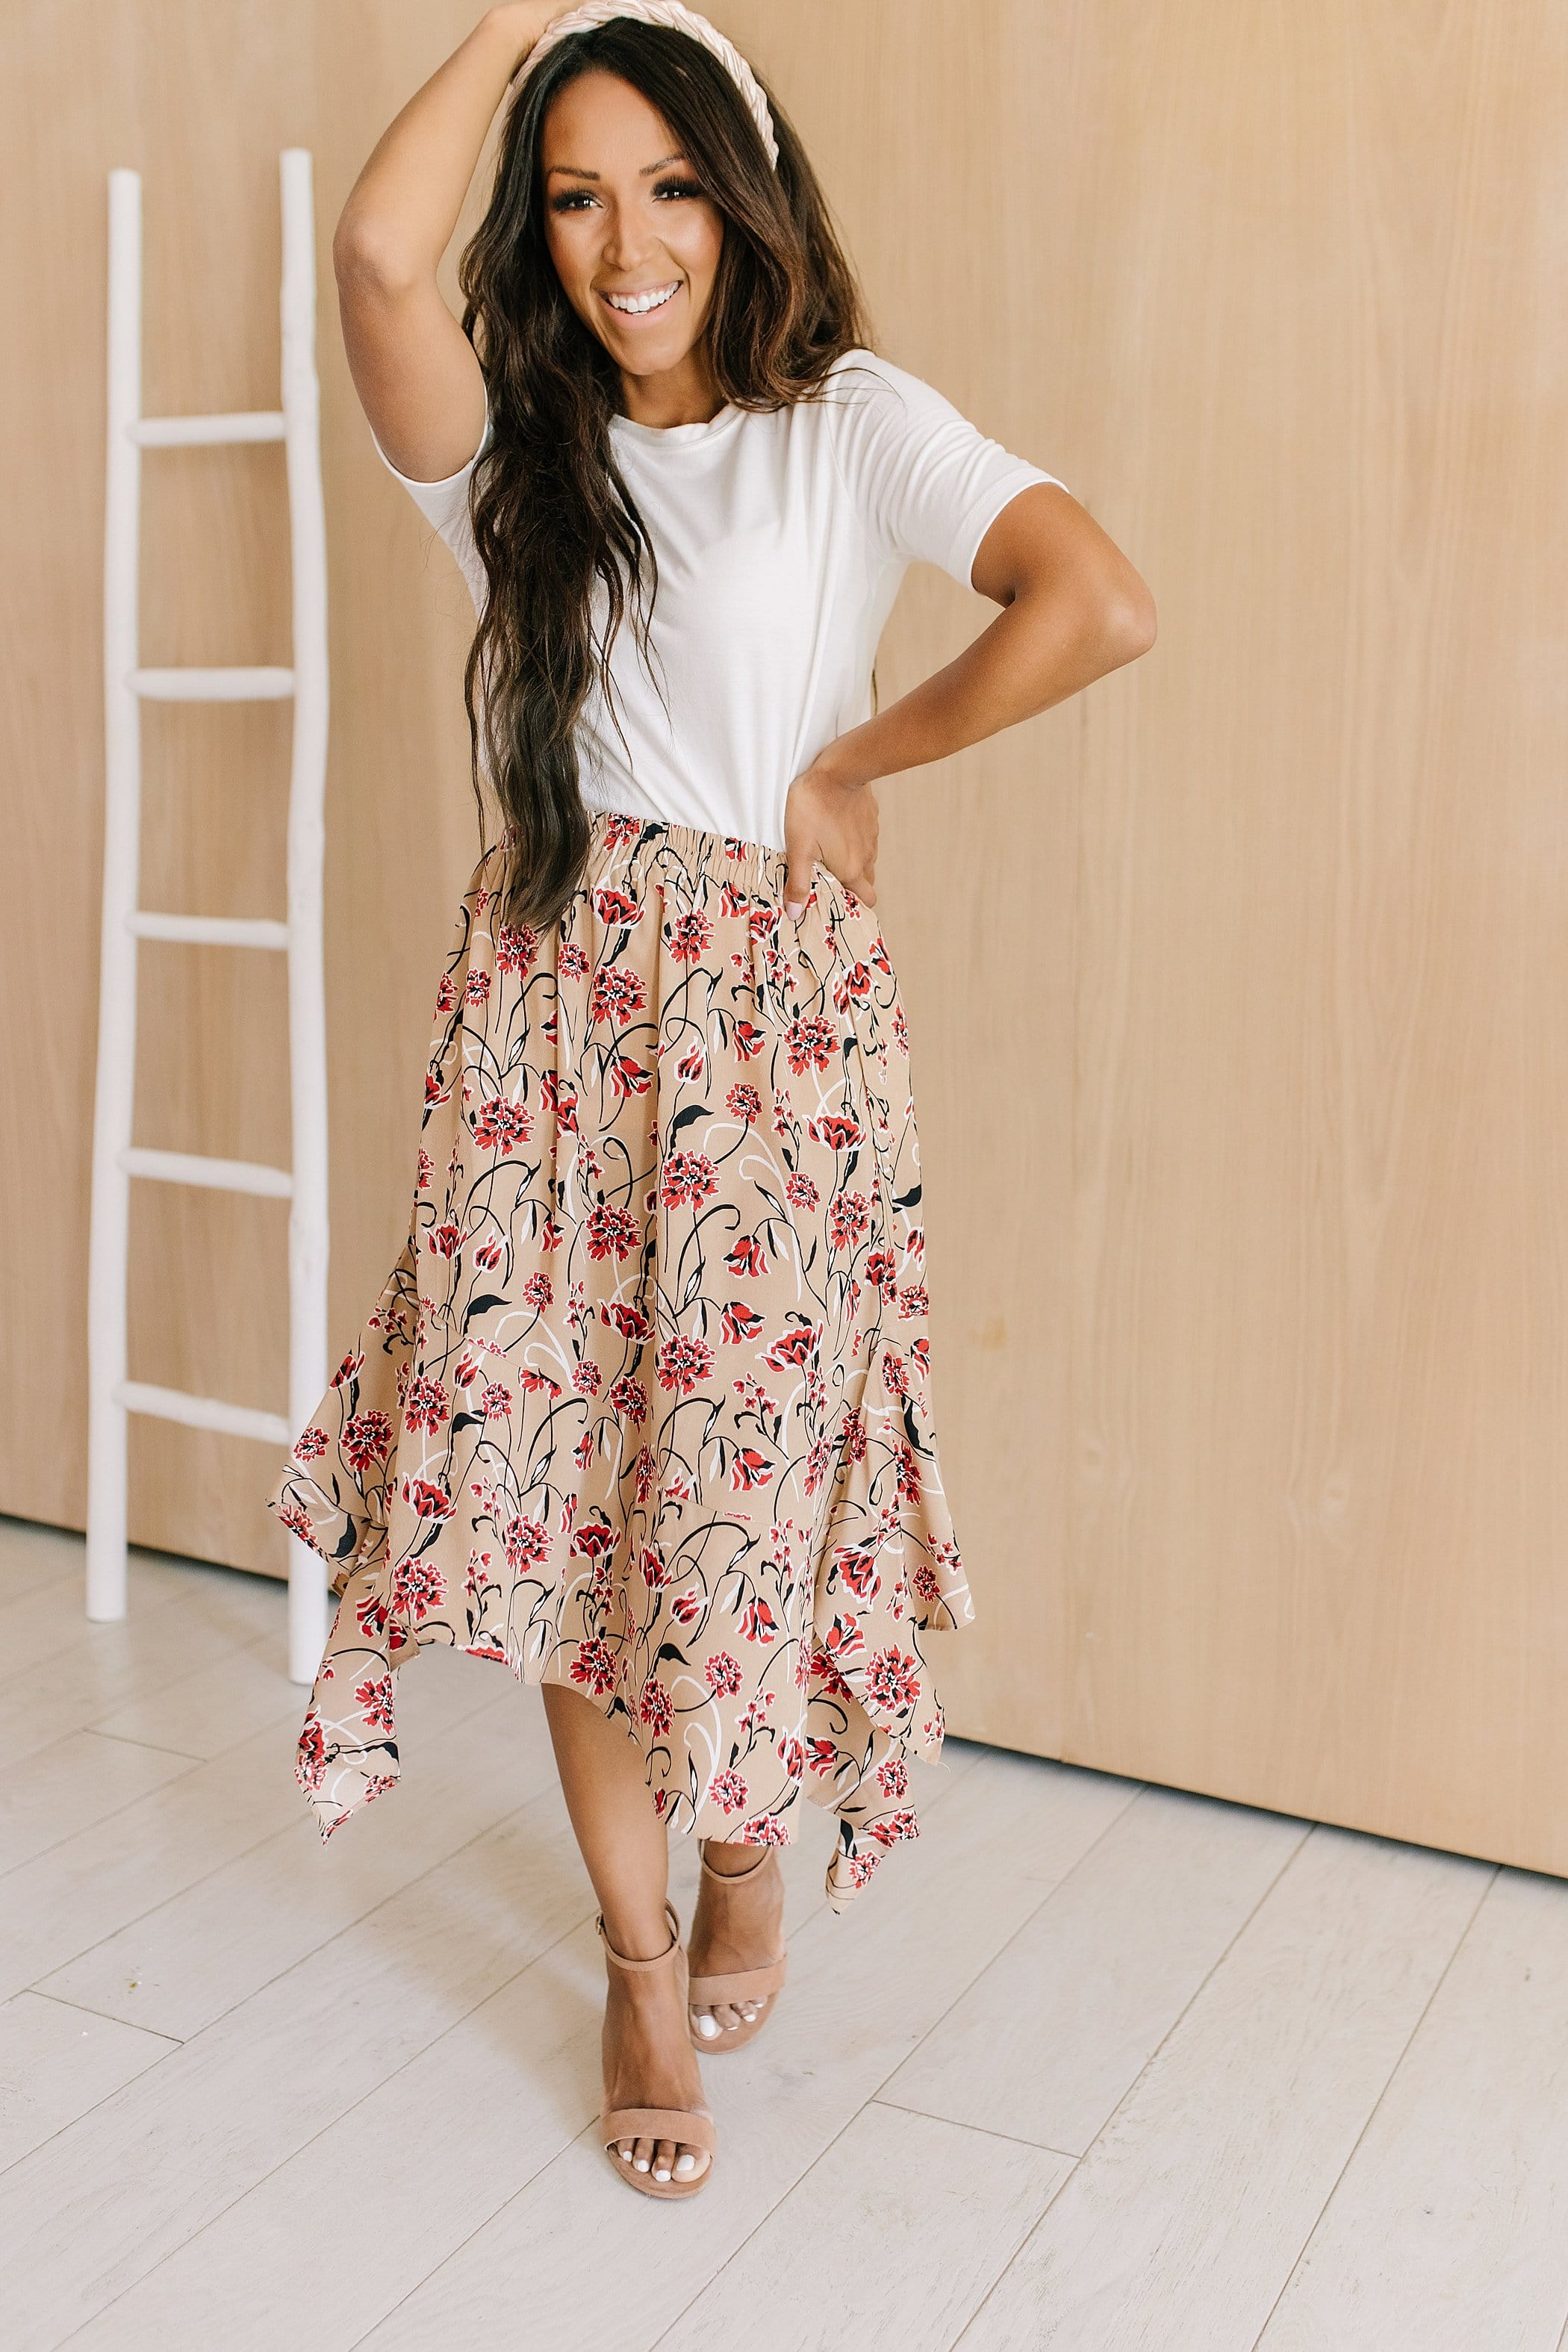 The Marisol Asymmetrical Floral Skirt in Latte